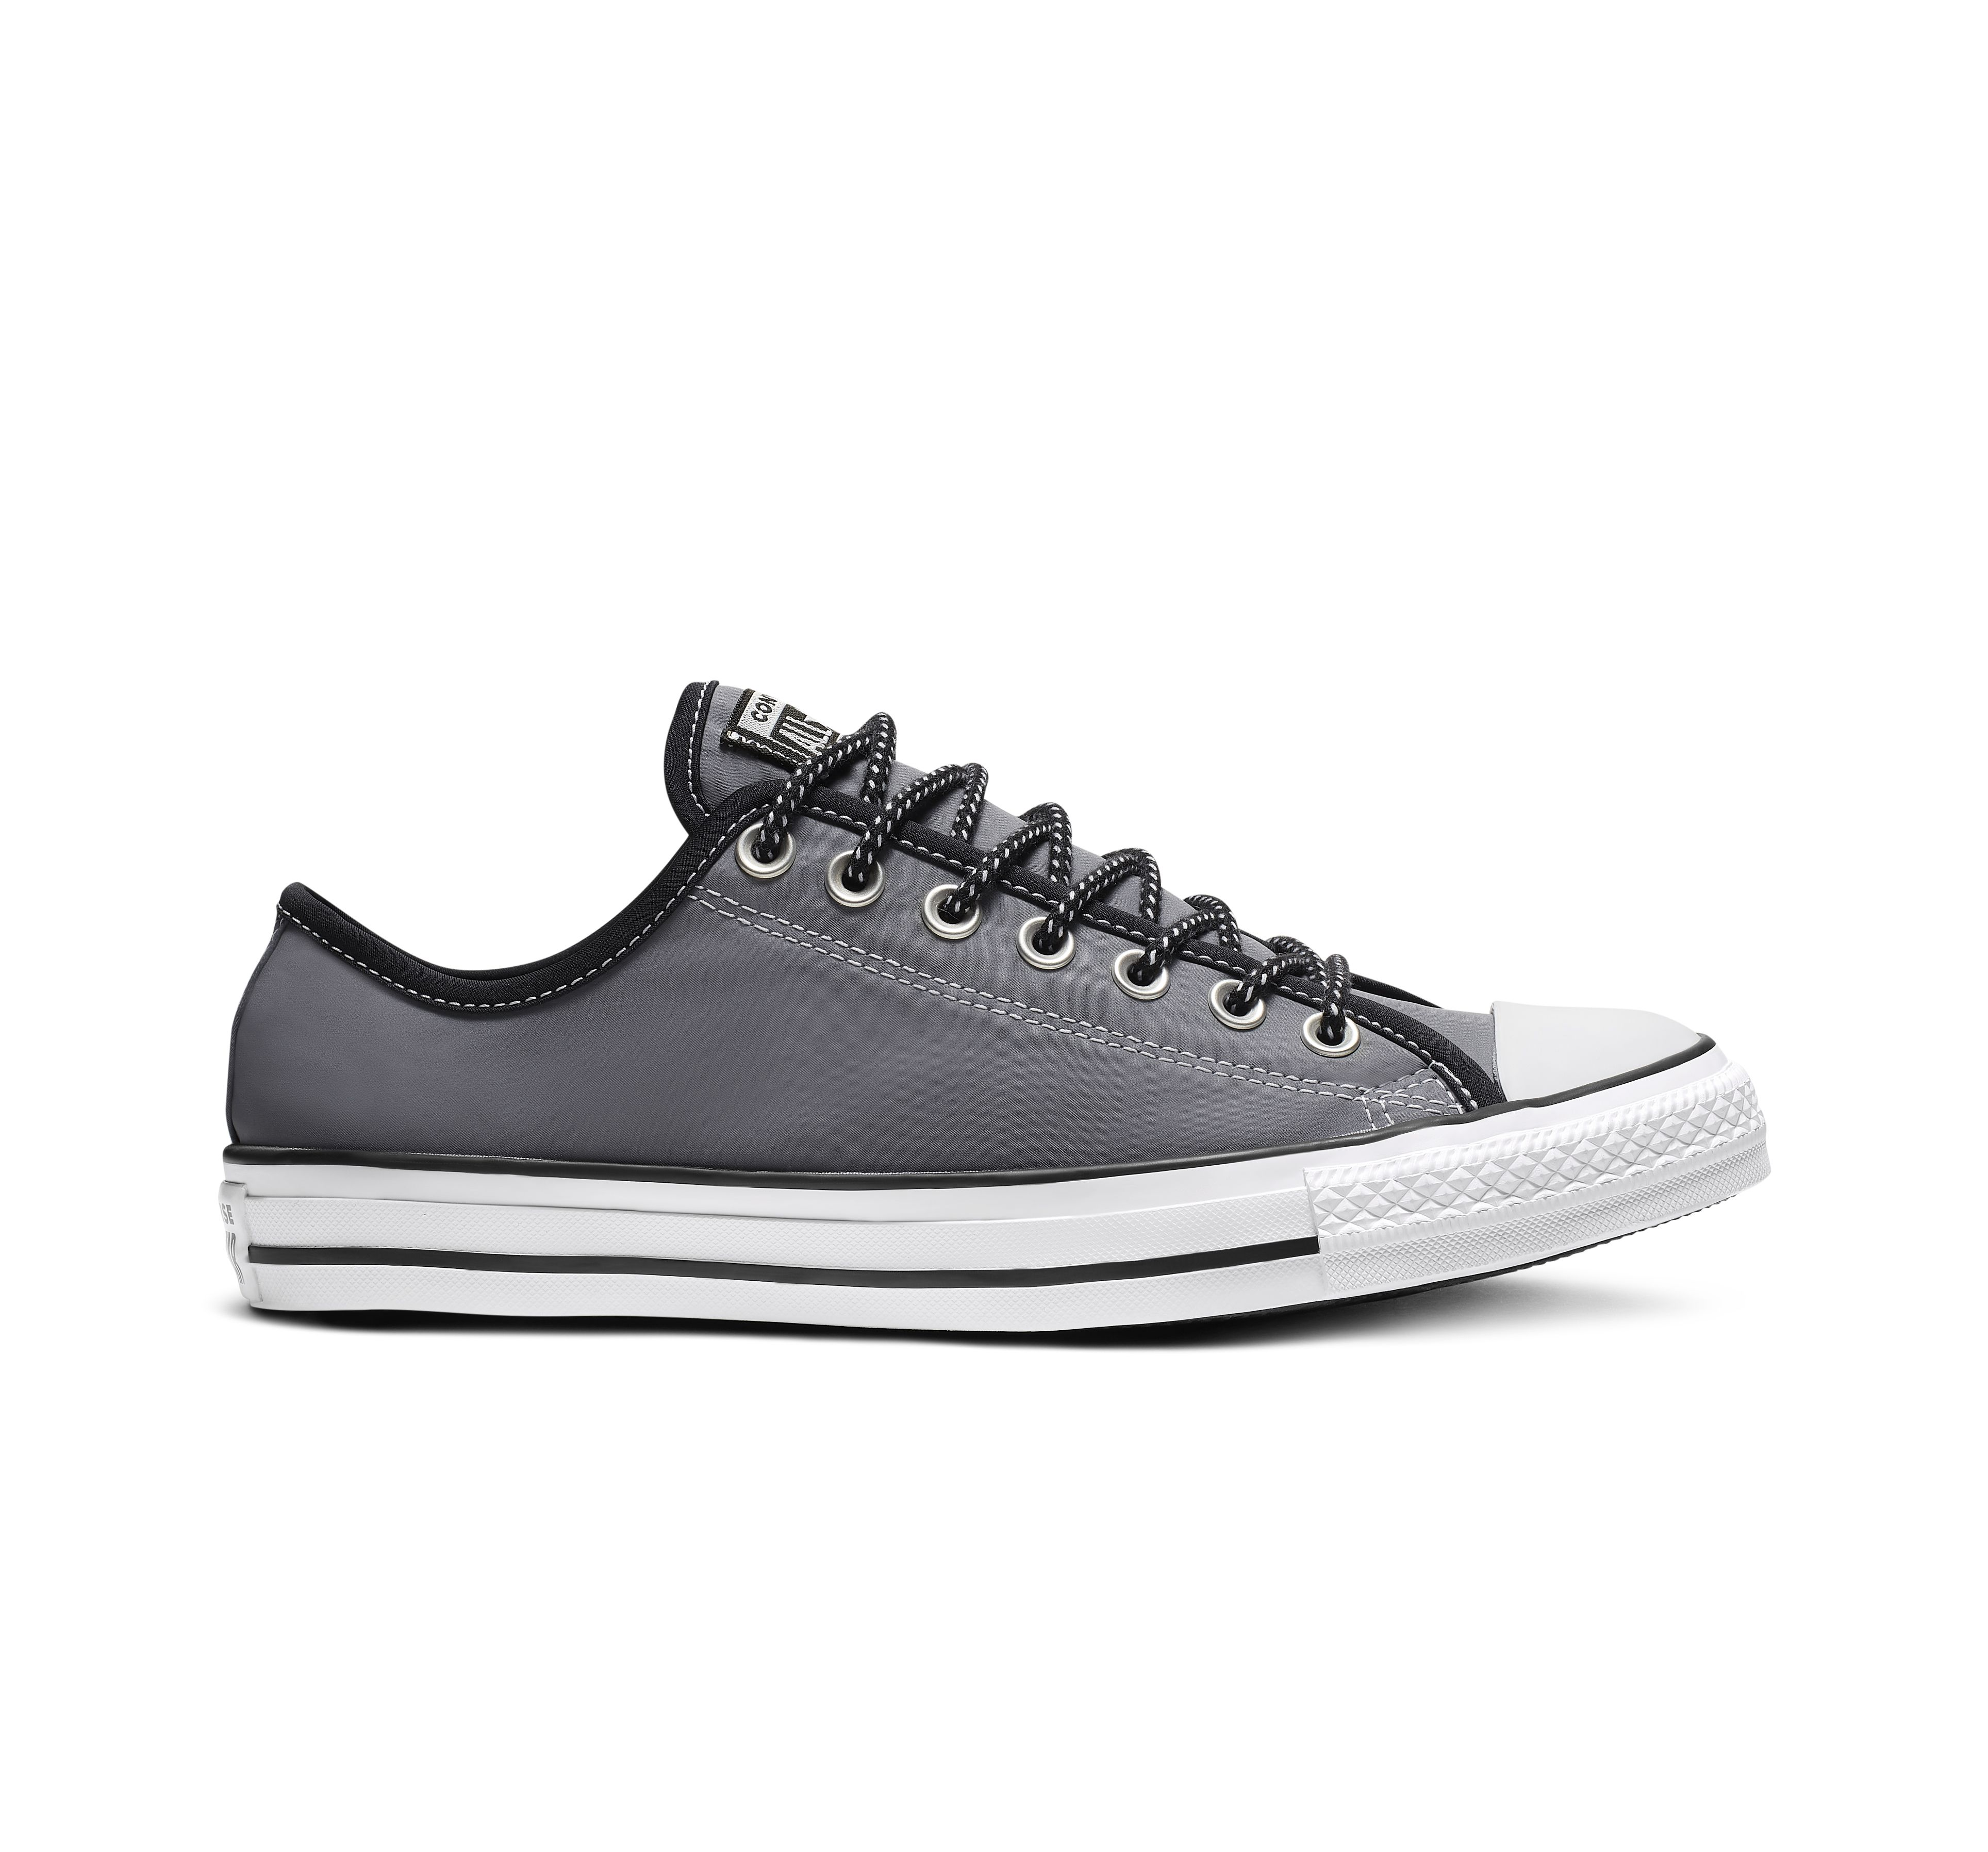 Chuck Taylor All Star Get Tubed Low Top